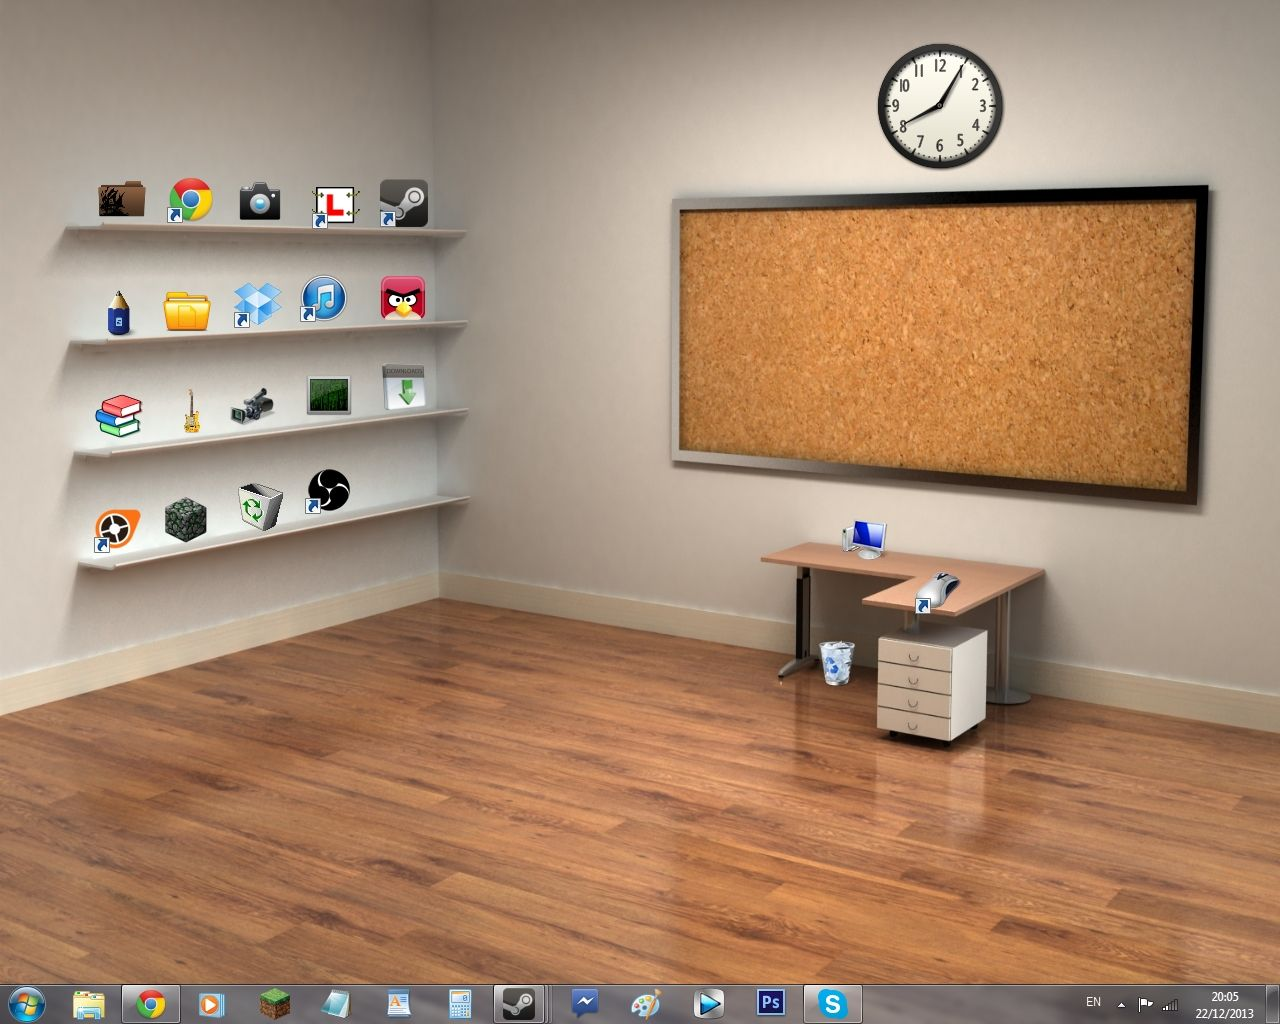 Free desktop background with shelves Download - Download ...